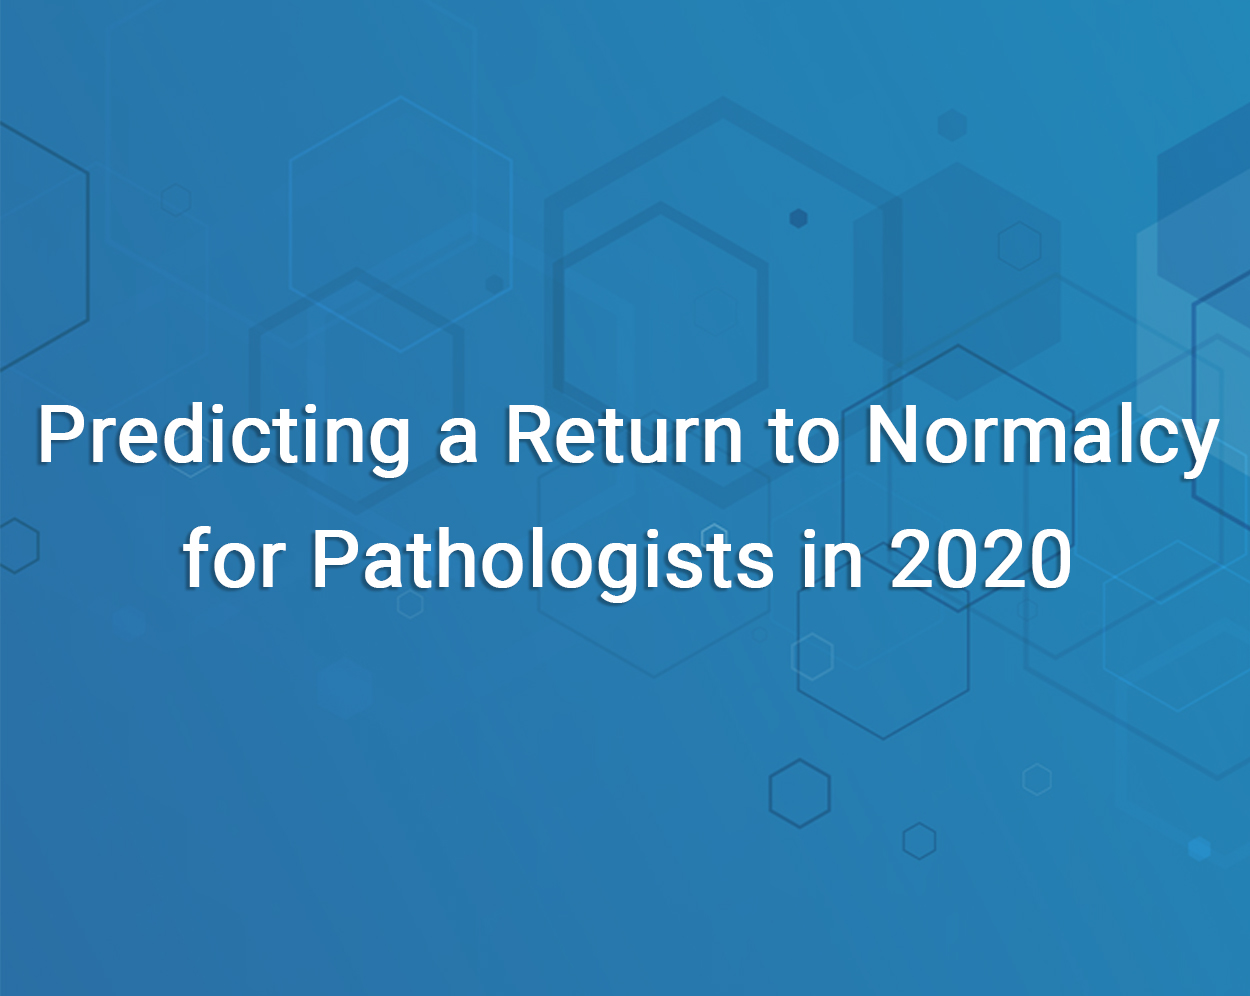 Pathologist Normalcy in 2020